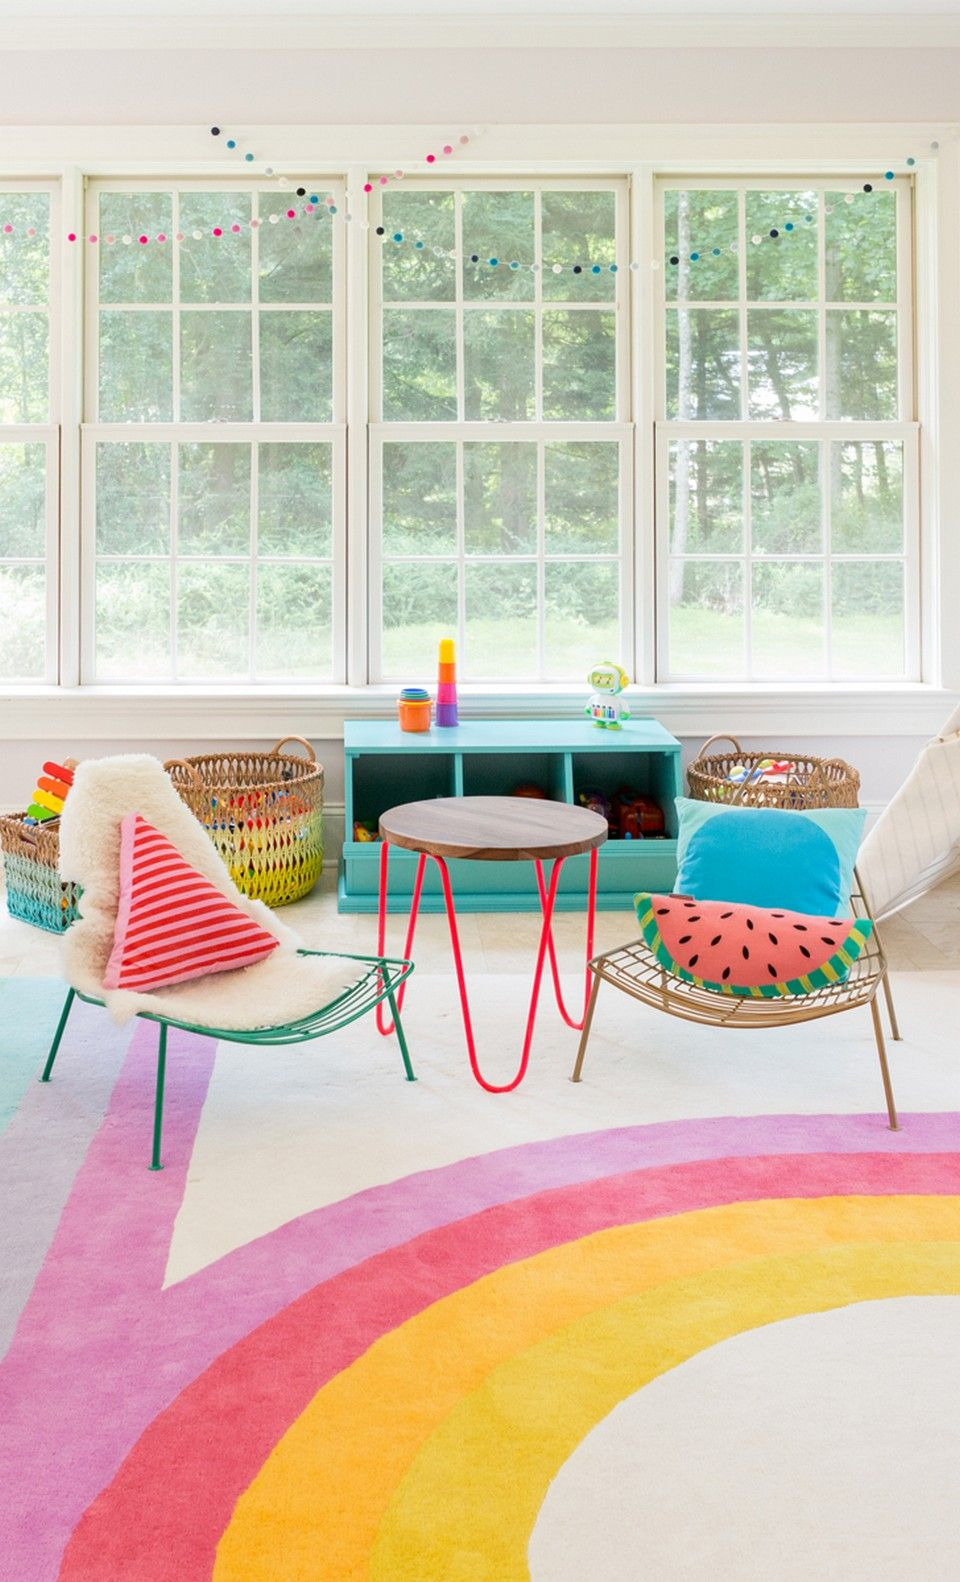 Children S And Kids Room Ideas Designs Inspiration: Colorful Contemporary Playroom Ideas: 99+ Inspiration